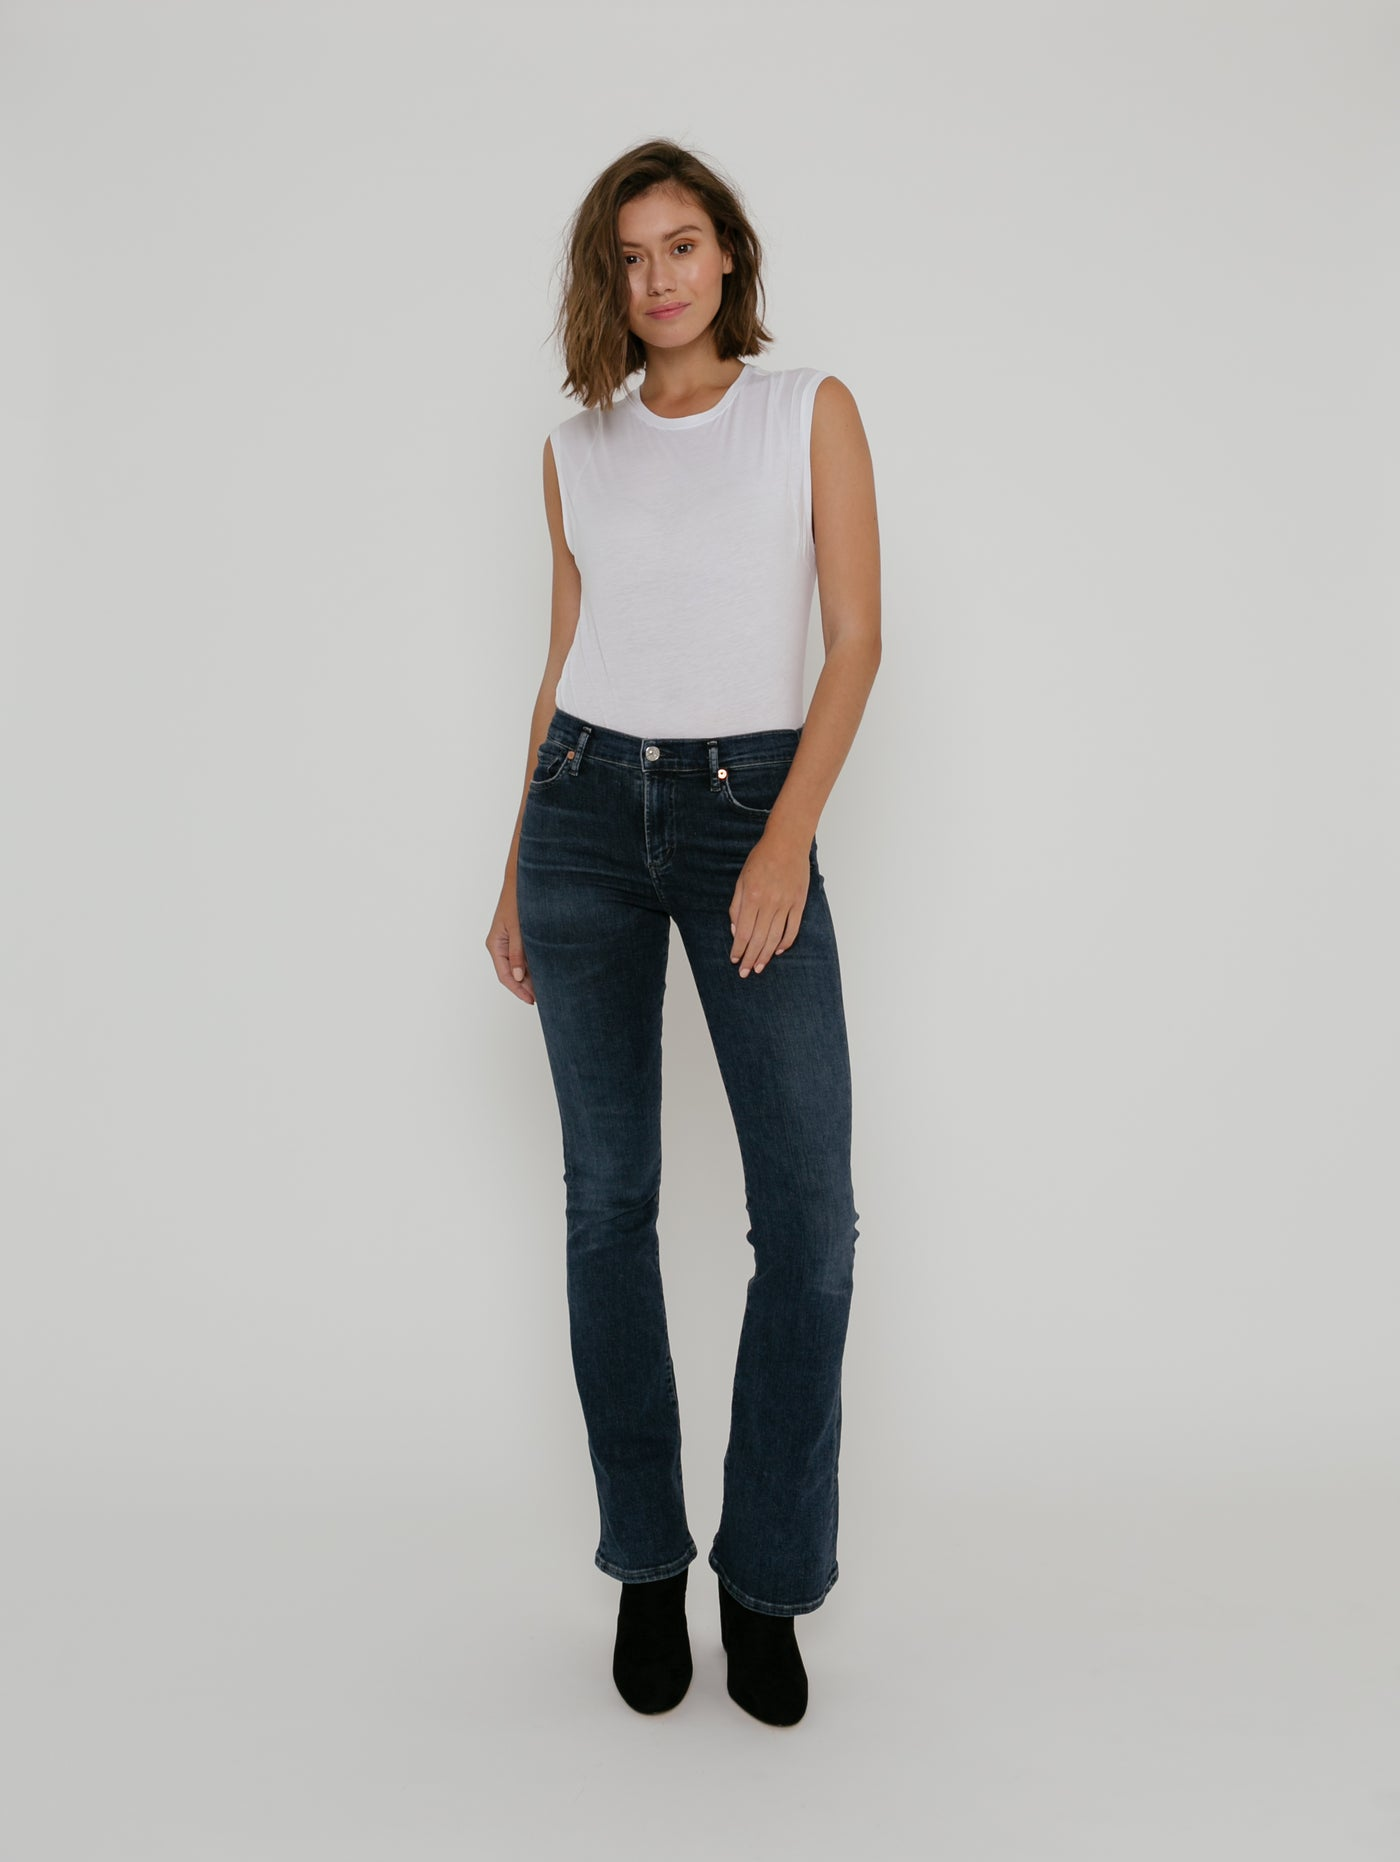 Emannuelle Slim Bootcut Jean - Alto-Citizens of Humanity-Over the Rainbow